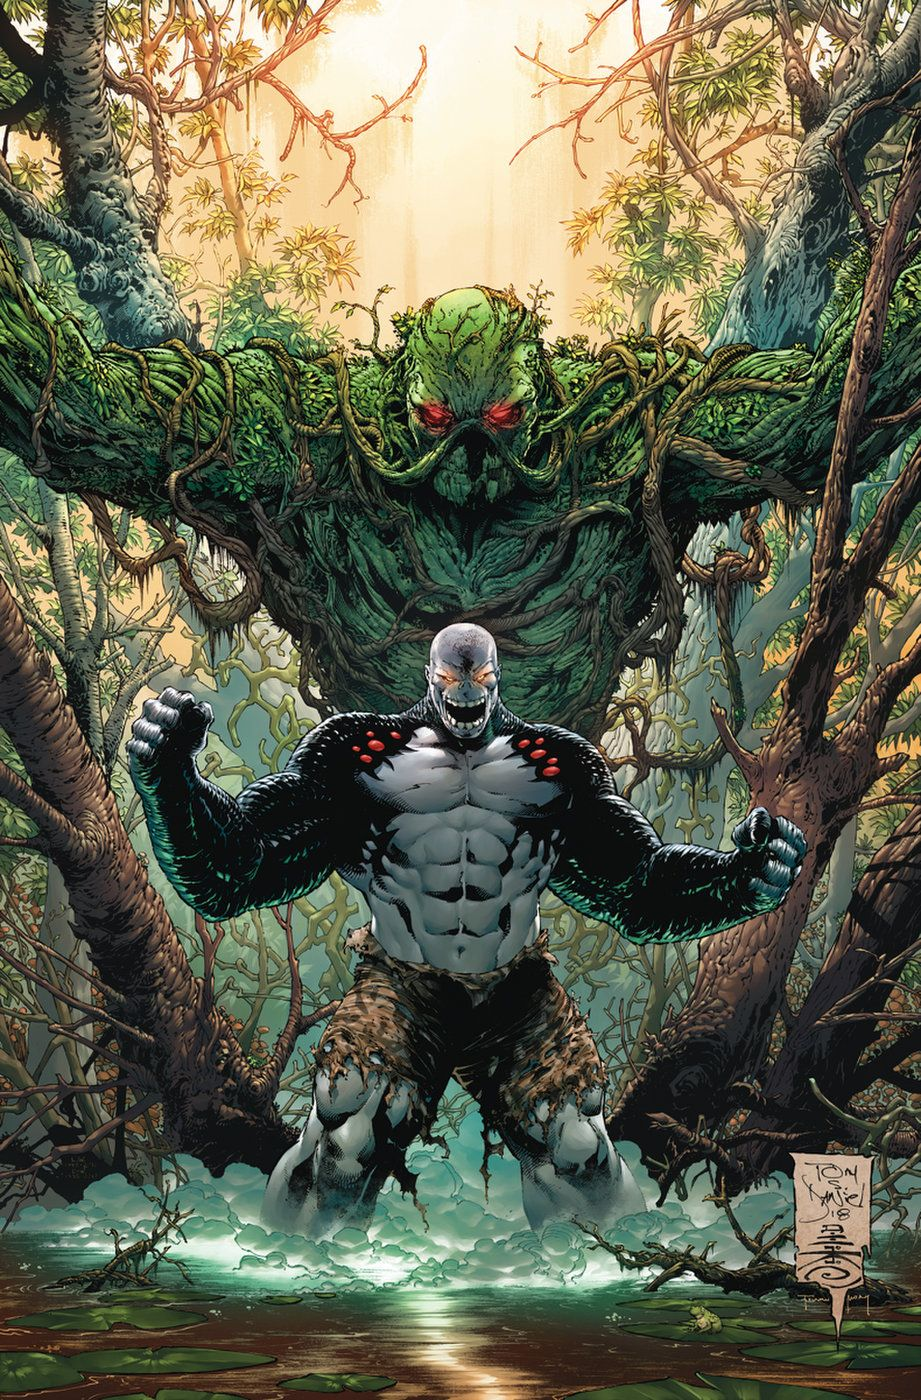 DAMAGE #6 (Damage vs Swamp-Thing) Cover by Tony S. Daniel #swampthing